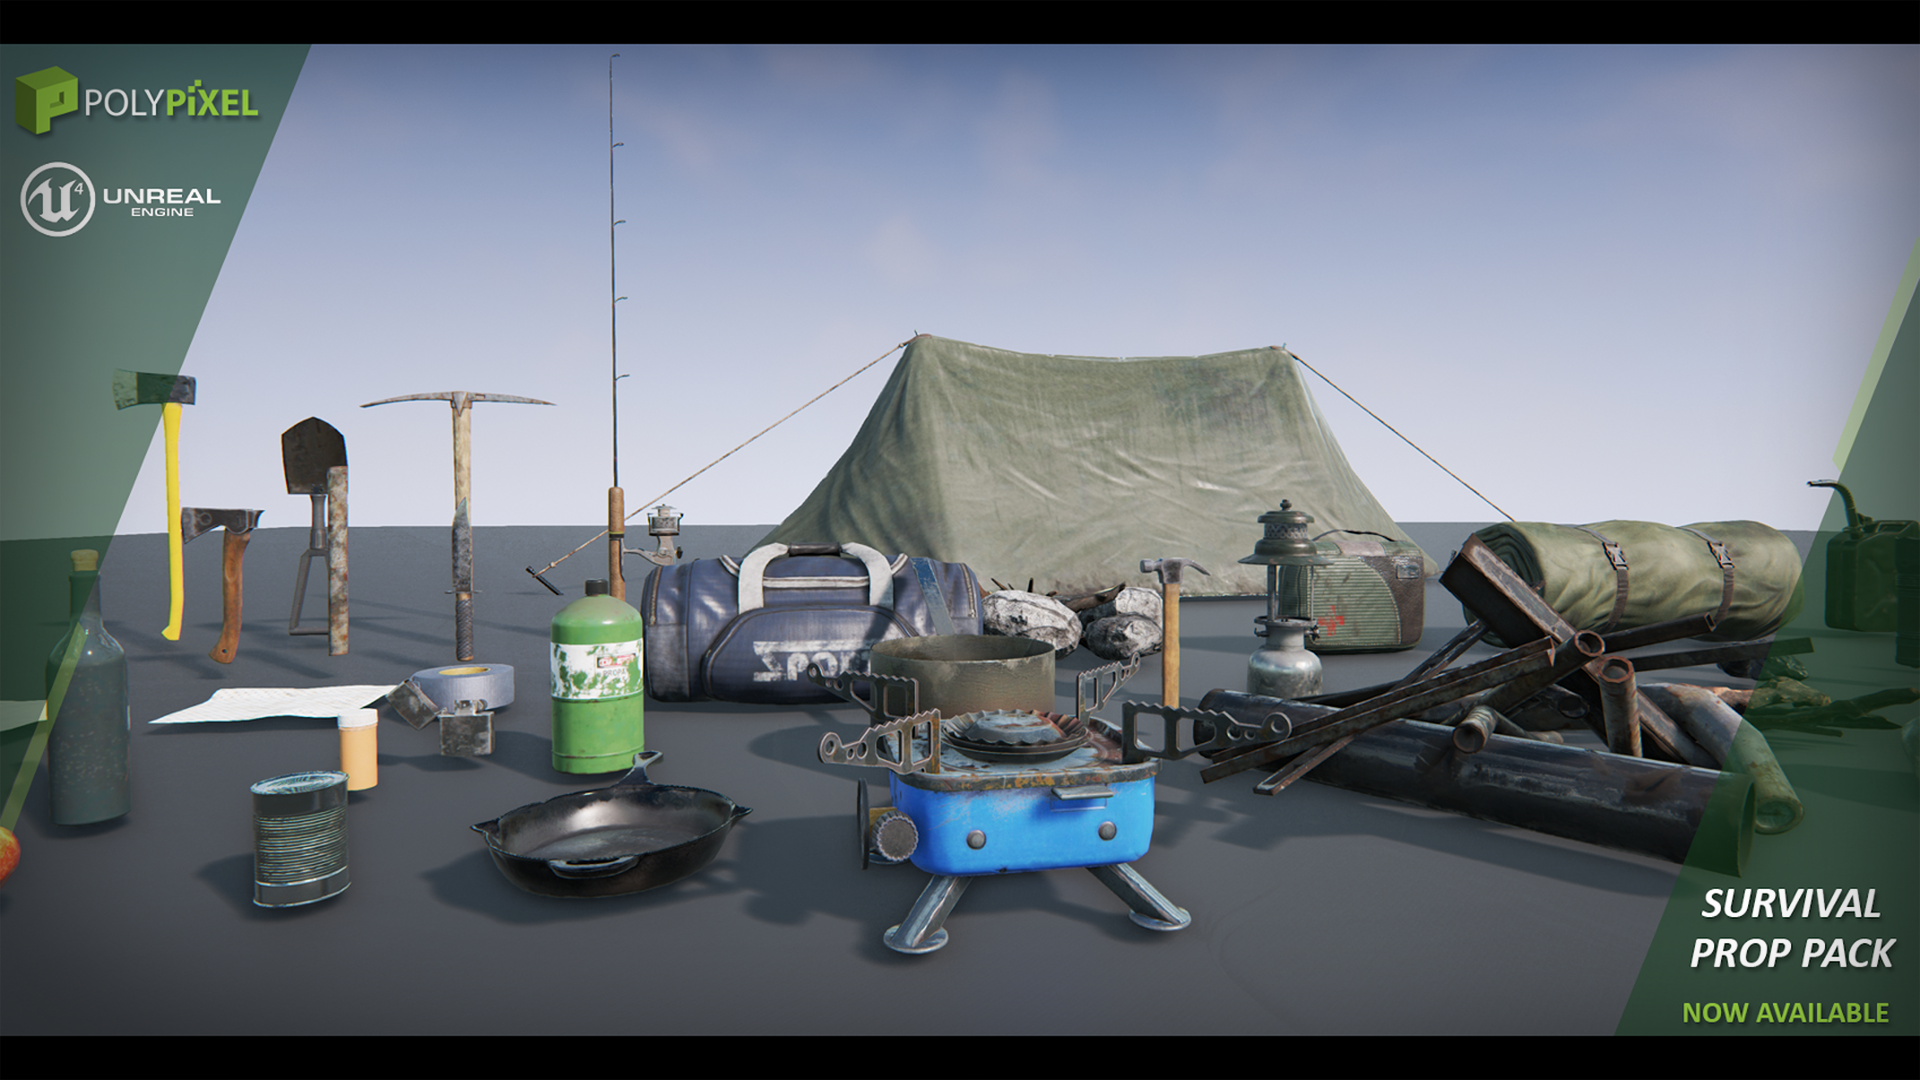 Survival Props by PolyPixel in props - UE4 Marketplace | Unreal